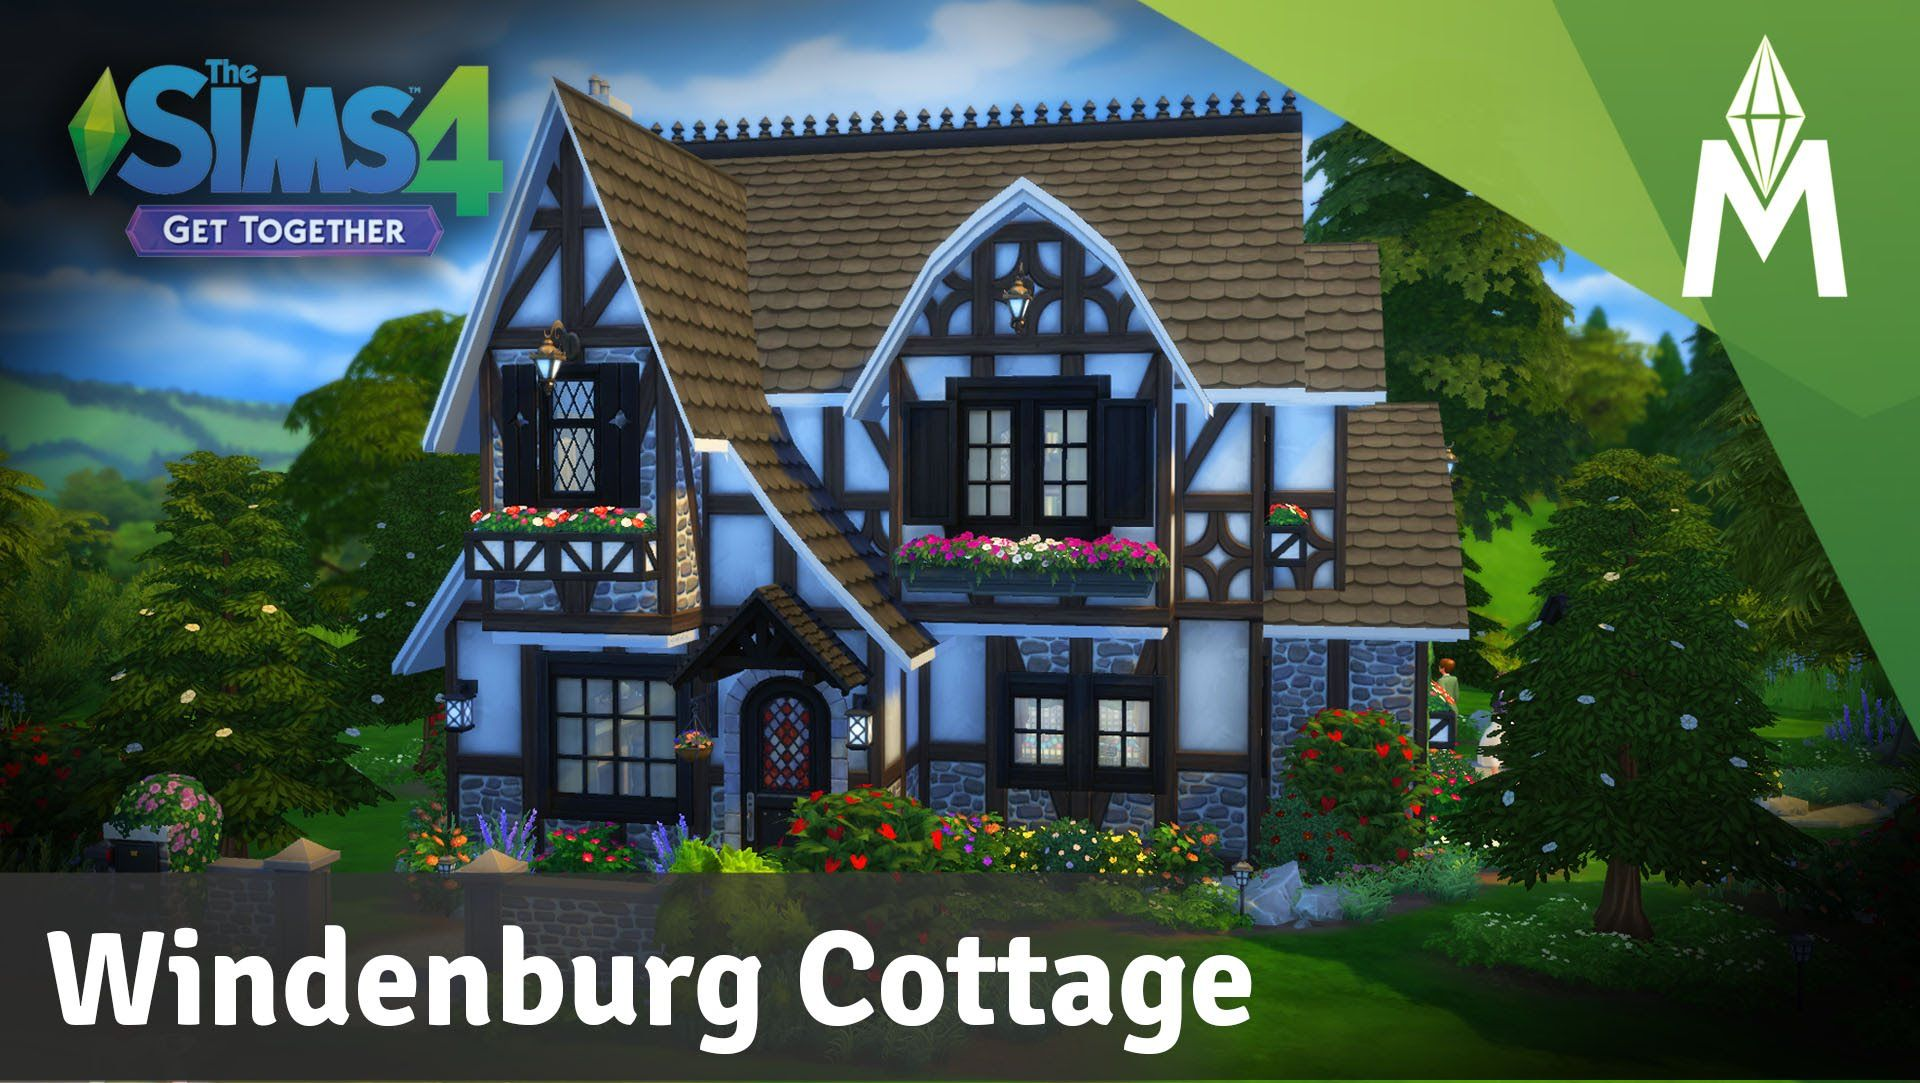 The Sims 4 House Building Windenburg Cottage